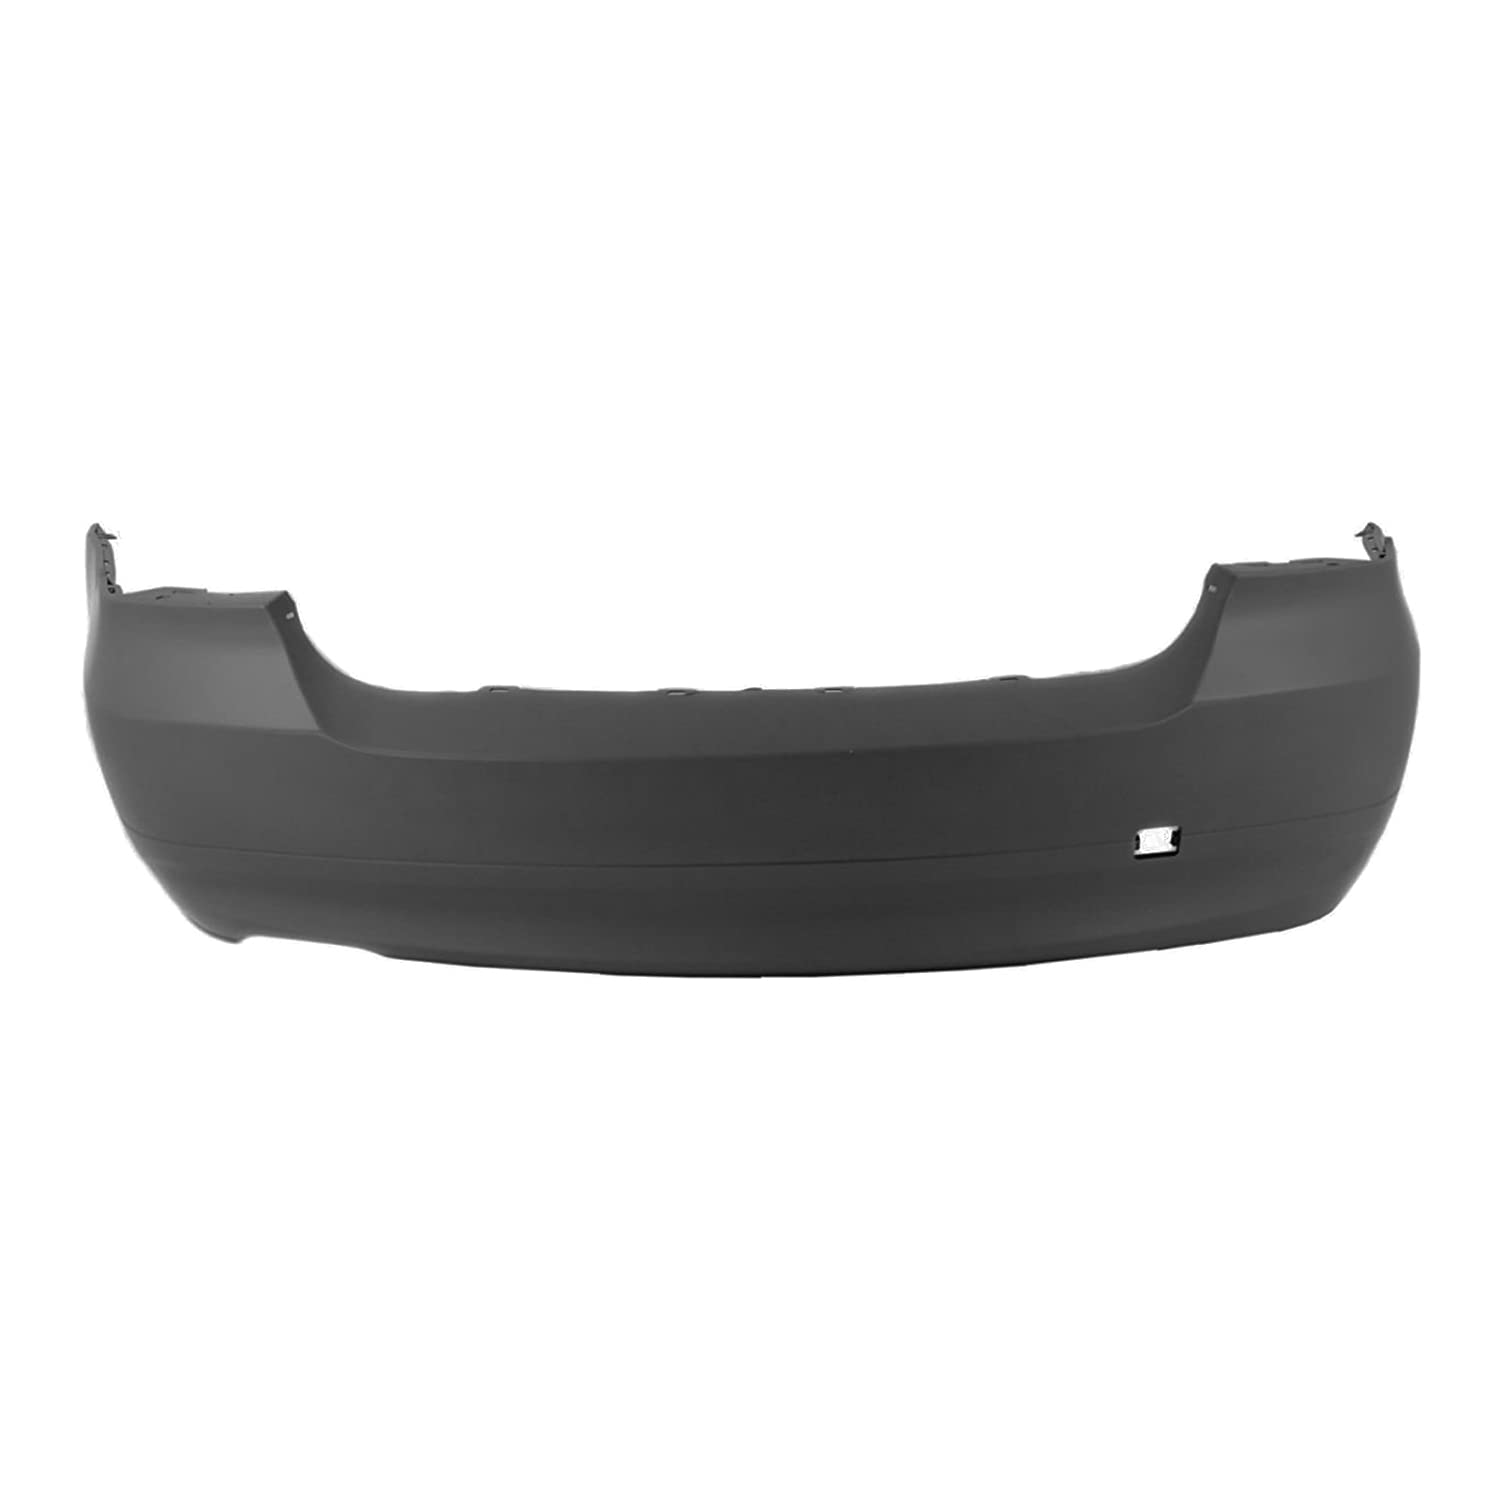 Rear Bumper Cover for 2006-2008 BMW 323 325 328 330 Sedan 3 Series 06-08 BM1100164 Painted to Match MBI AUTO